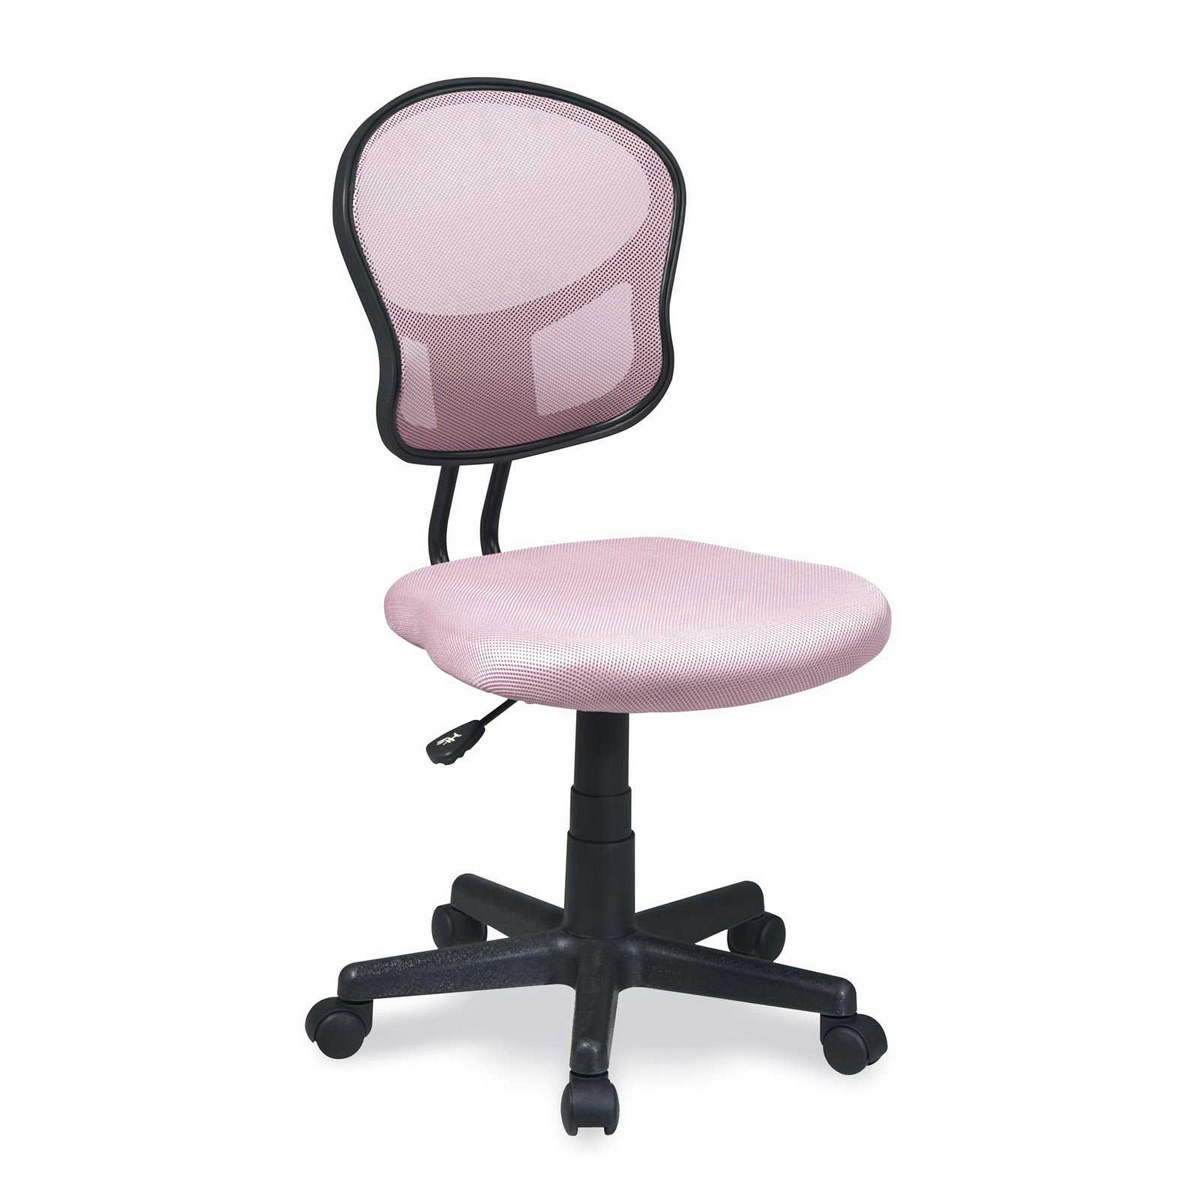 ergonomic chair description custom office products